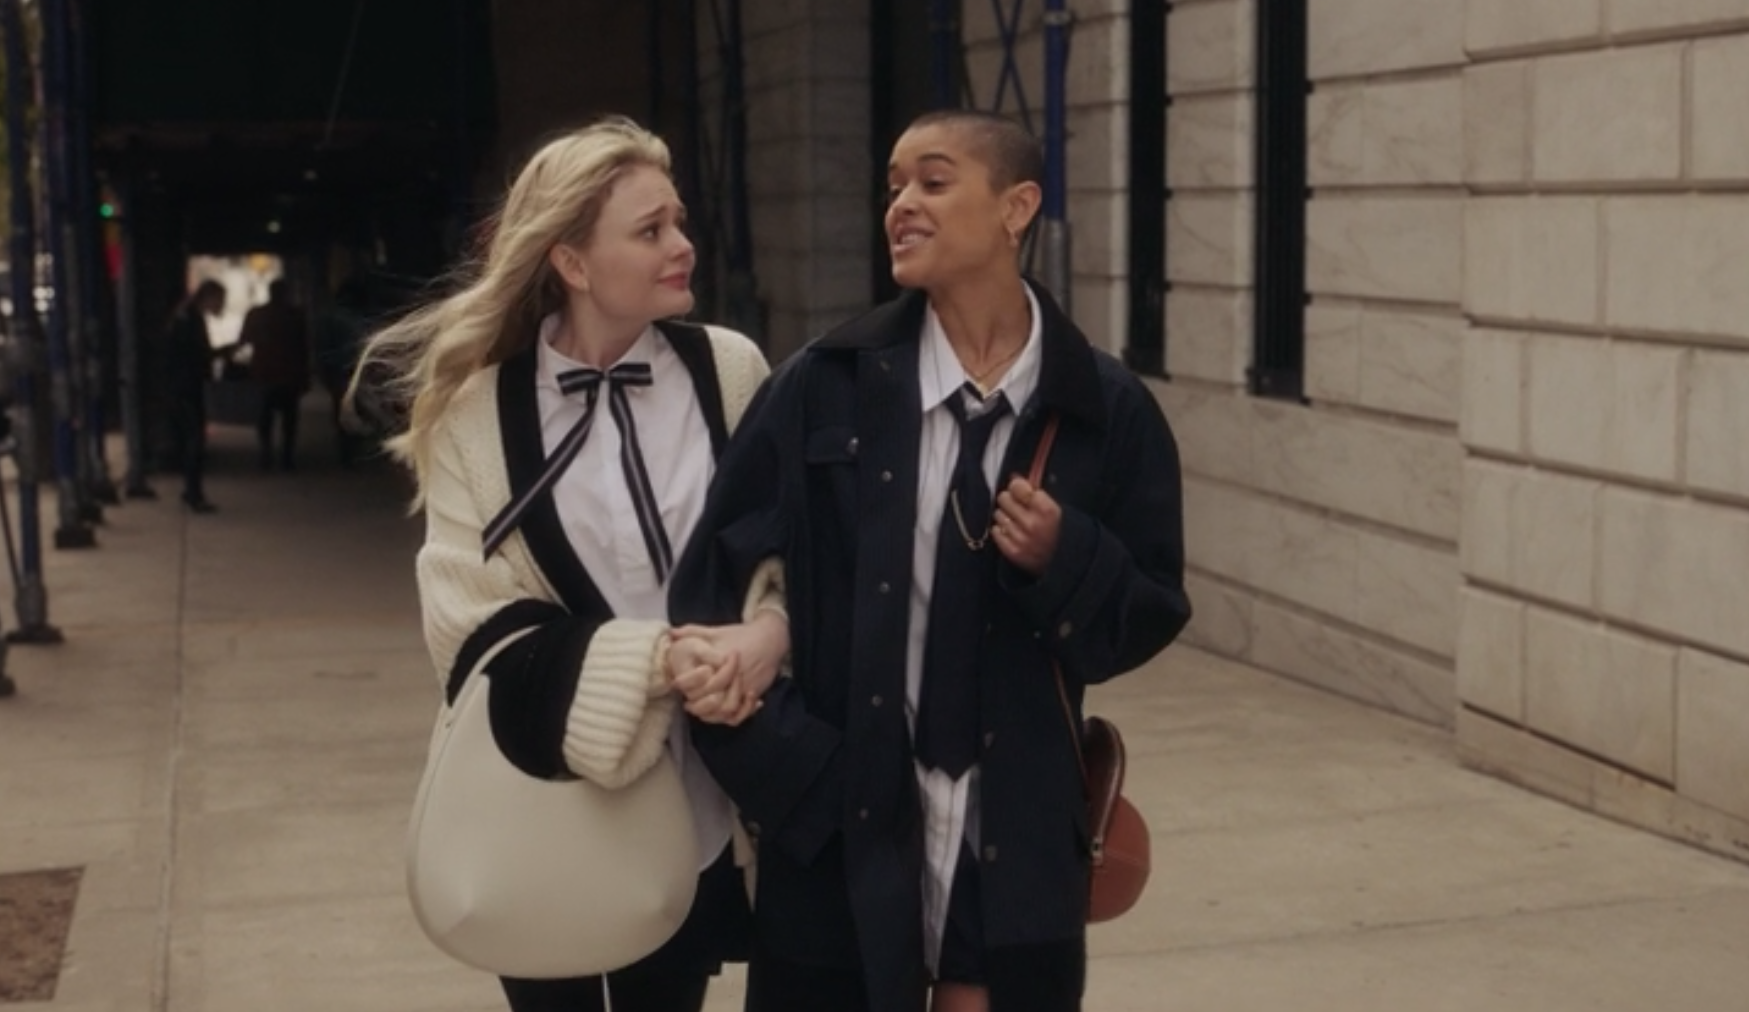 Audrey wears an oversize knit sweater with a skinny bow tie, and Julien wears a pin-striped button-up shirt, dark tie, and matching oversize jacket